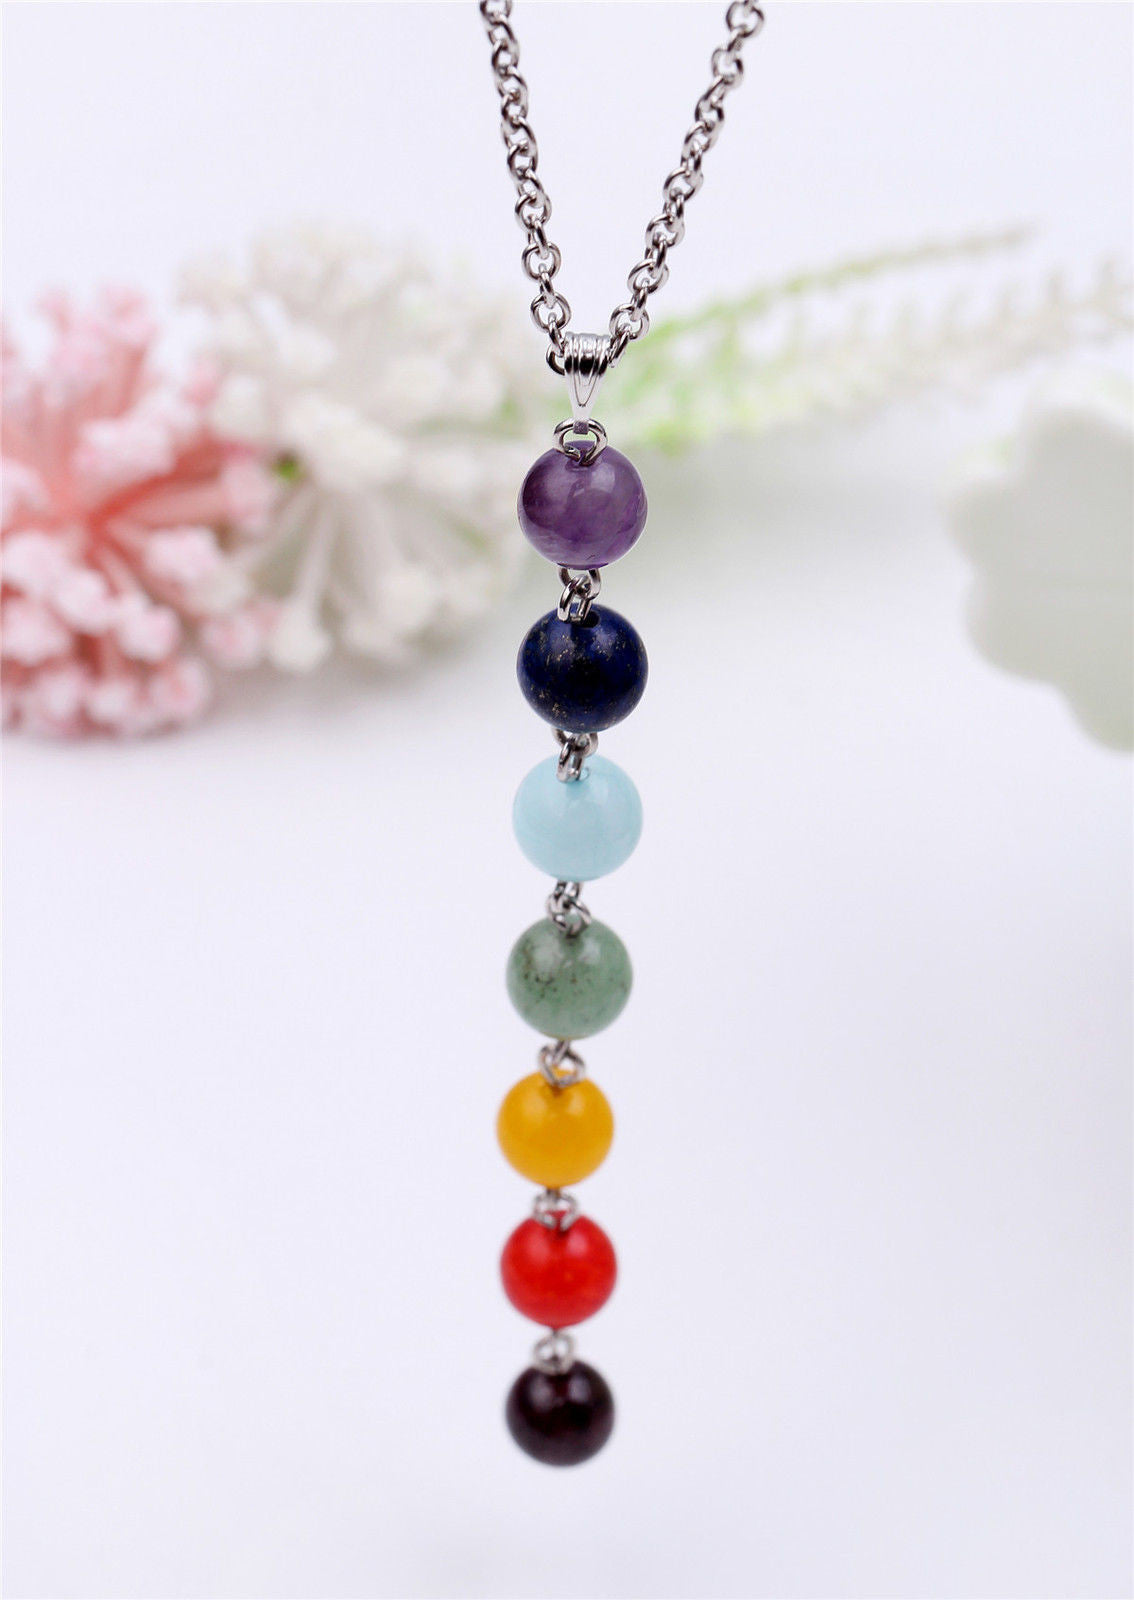 7 Chakra Bead Necklace Mindyana Perfect Equanimity